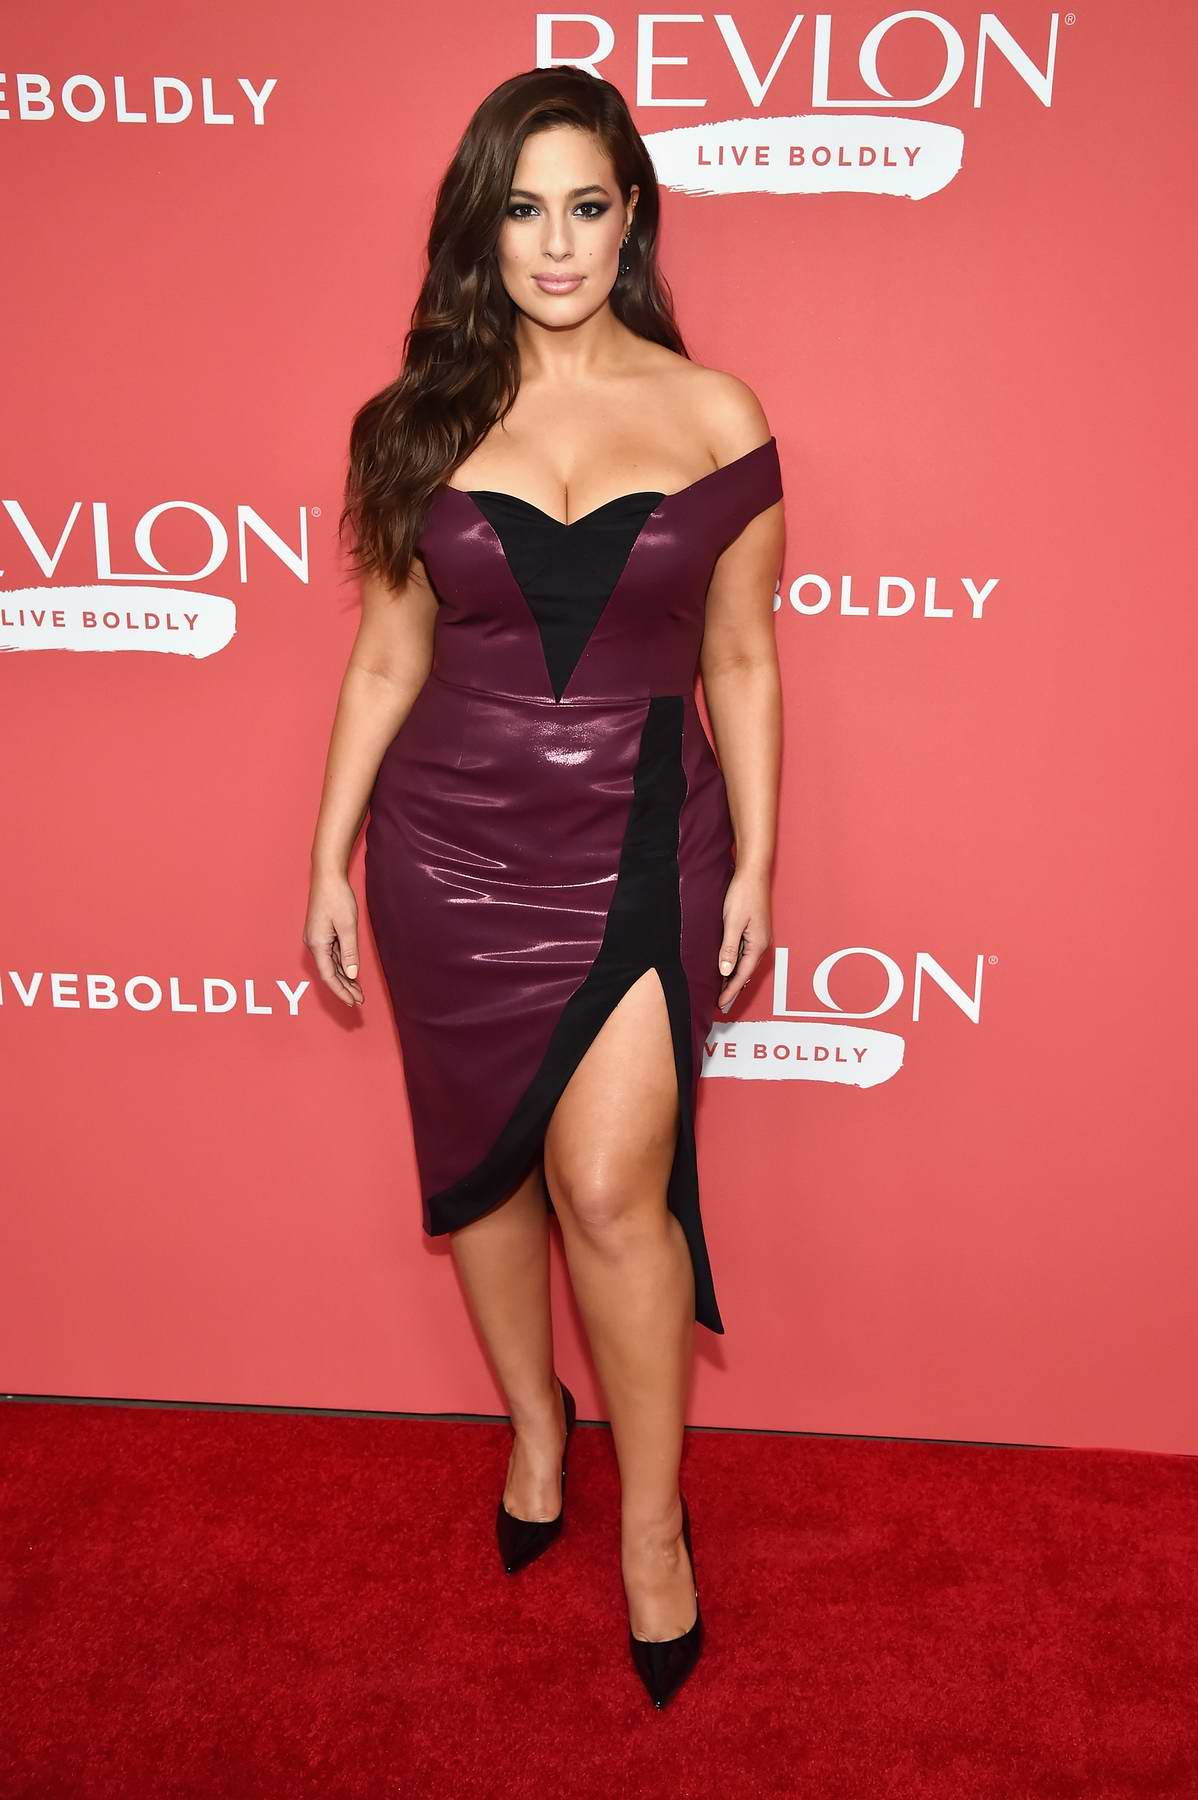 Ashley Graham at Revlon's 'Live Boldly' Campaign Launch in New York